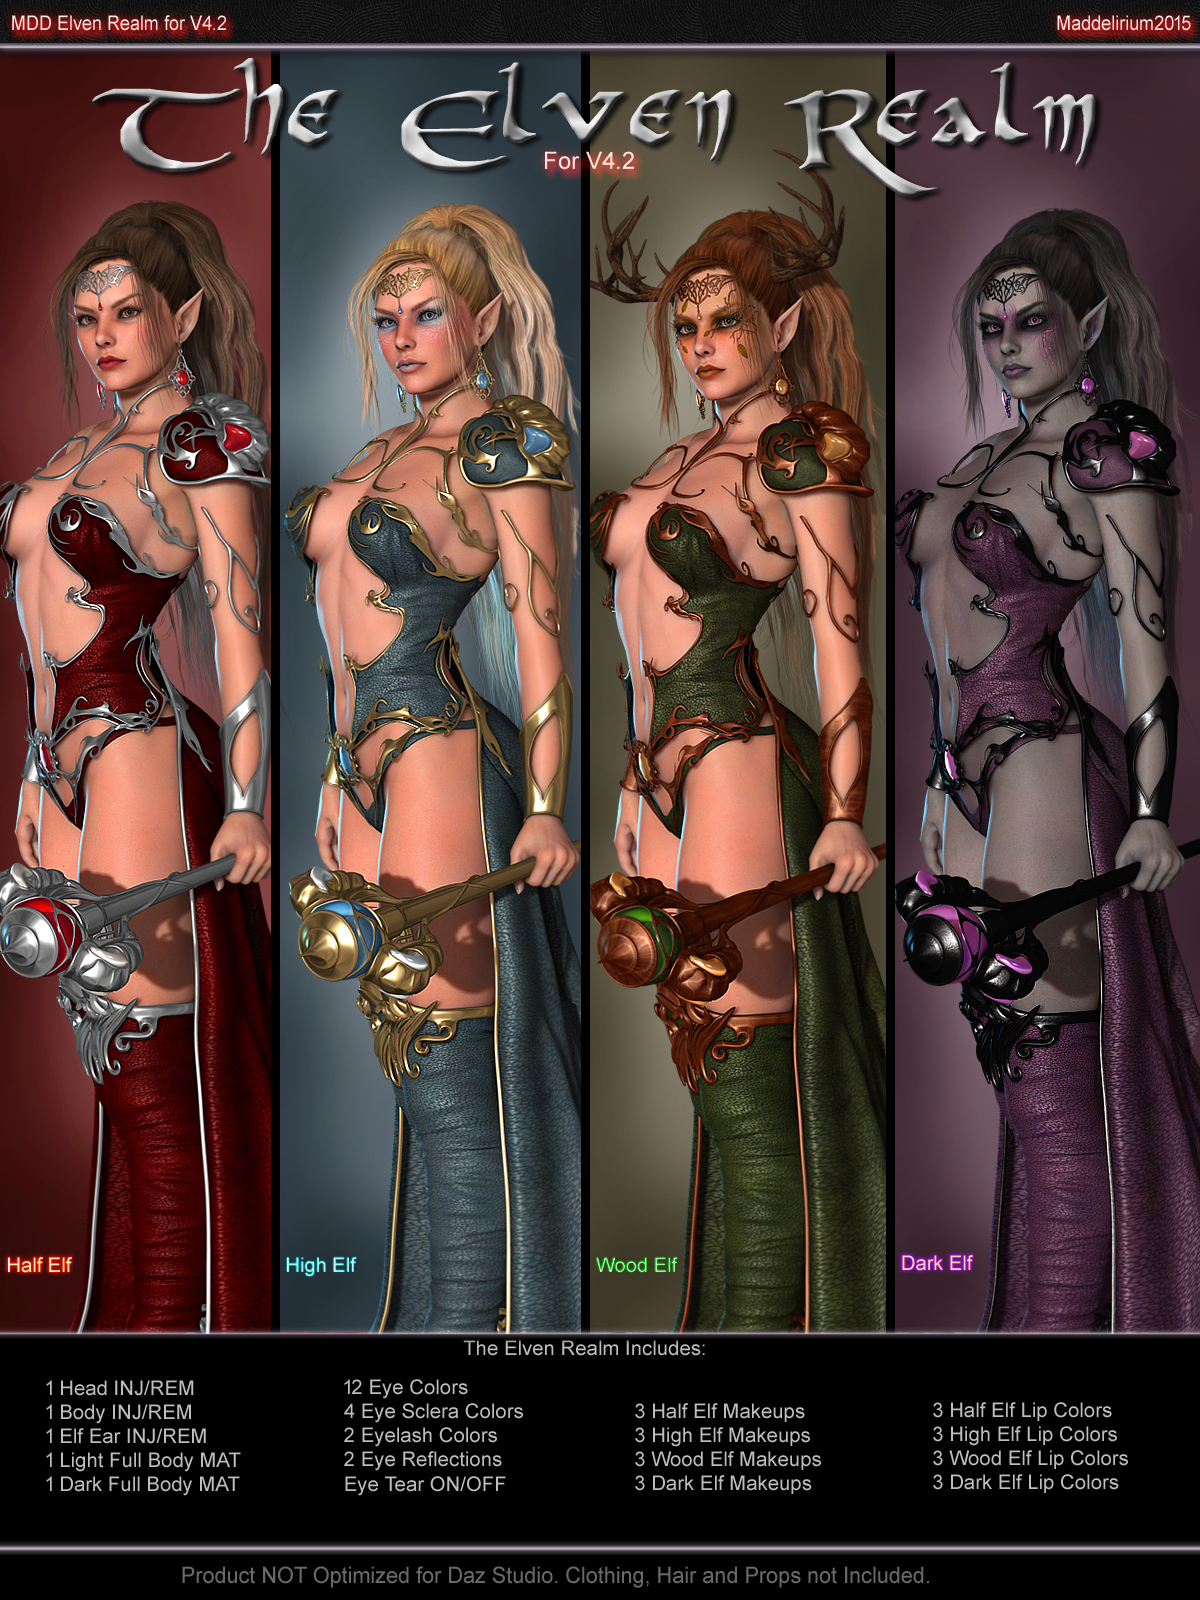 MDD The Elven Realm for V4.2